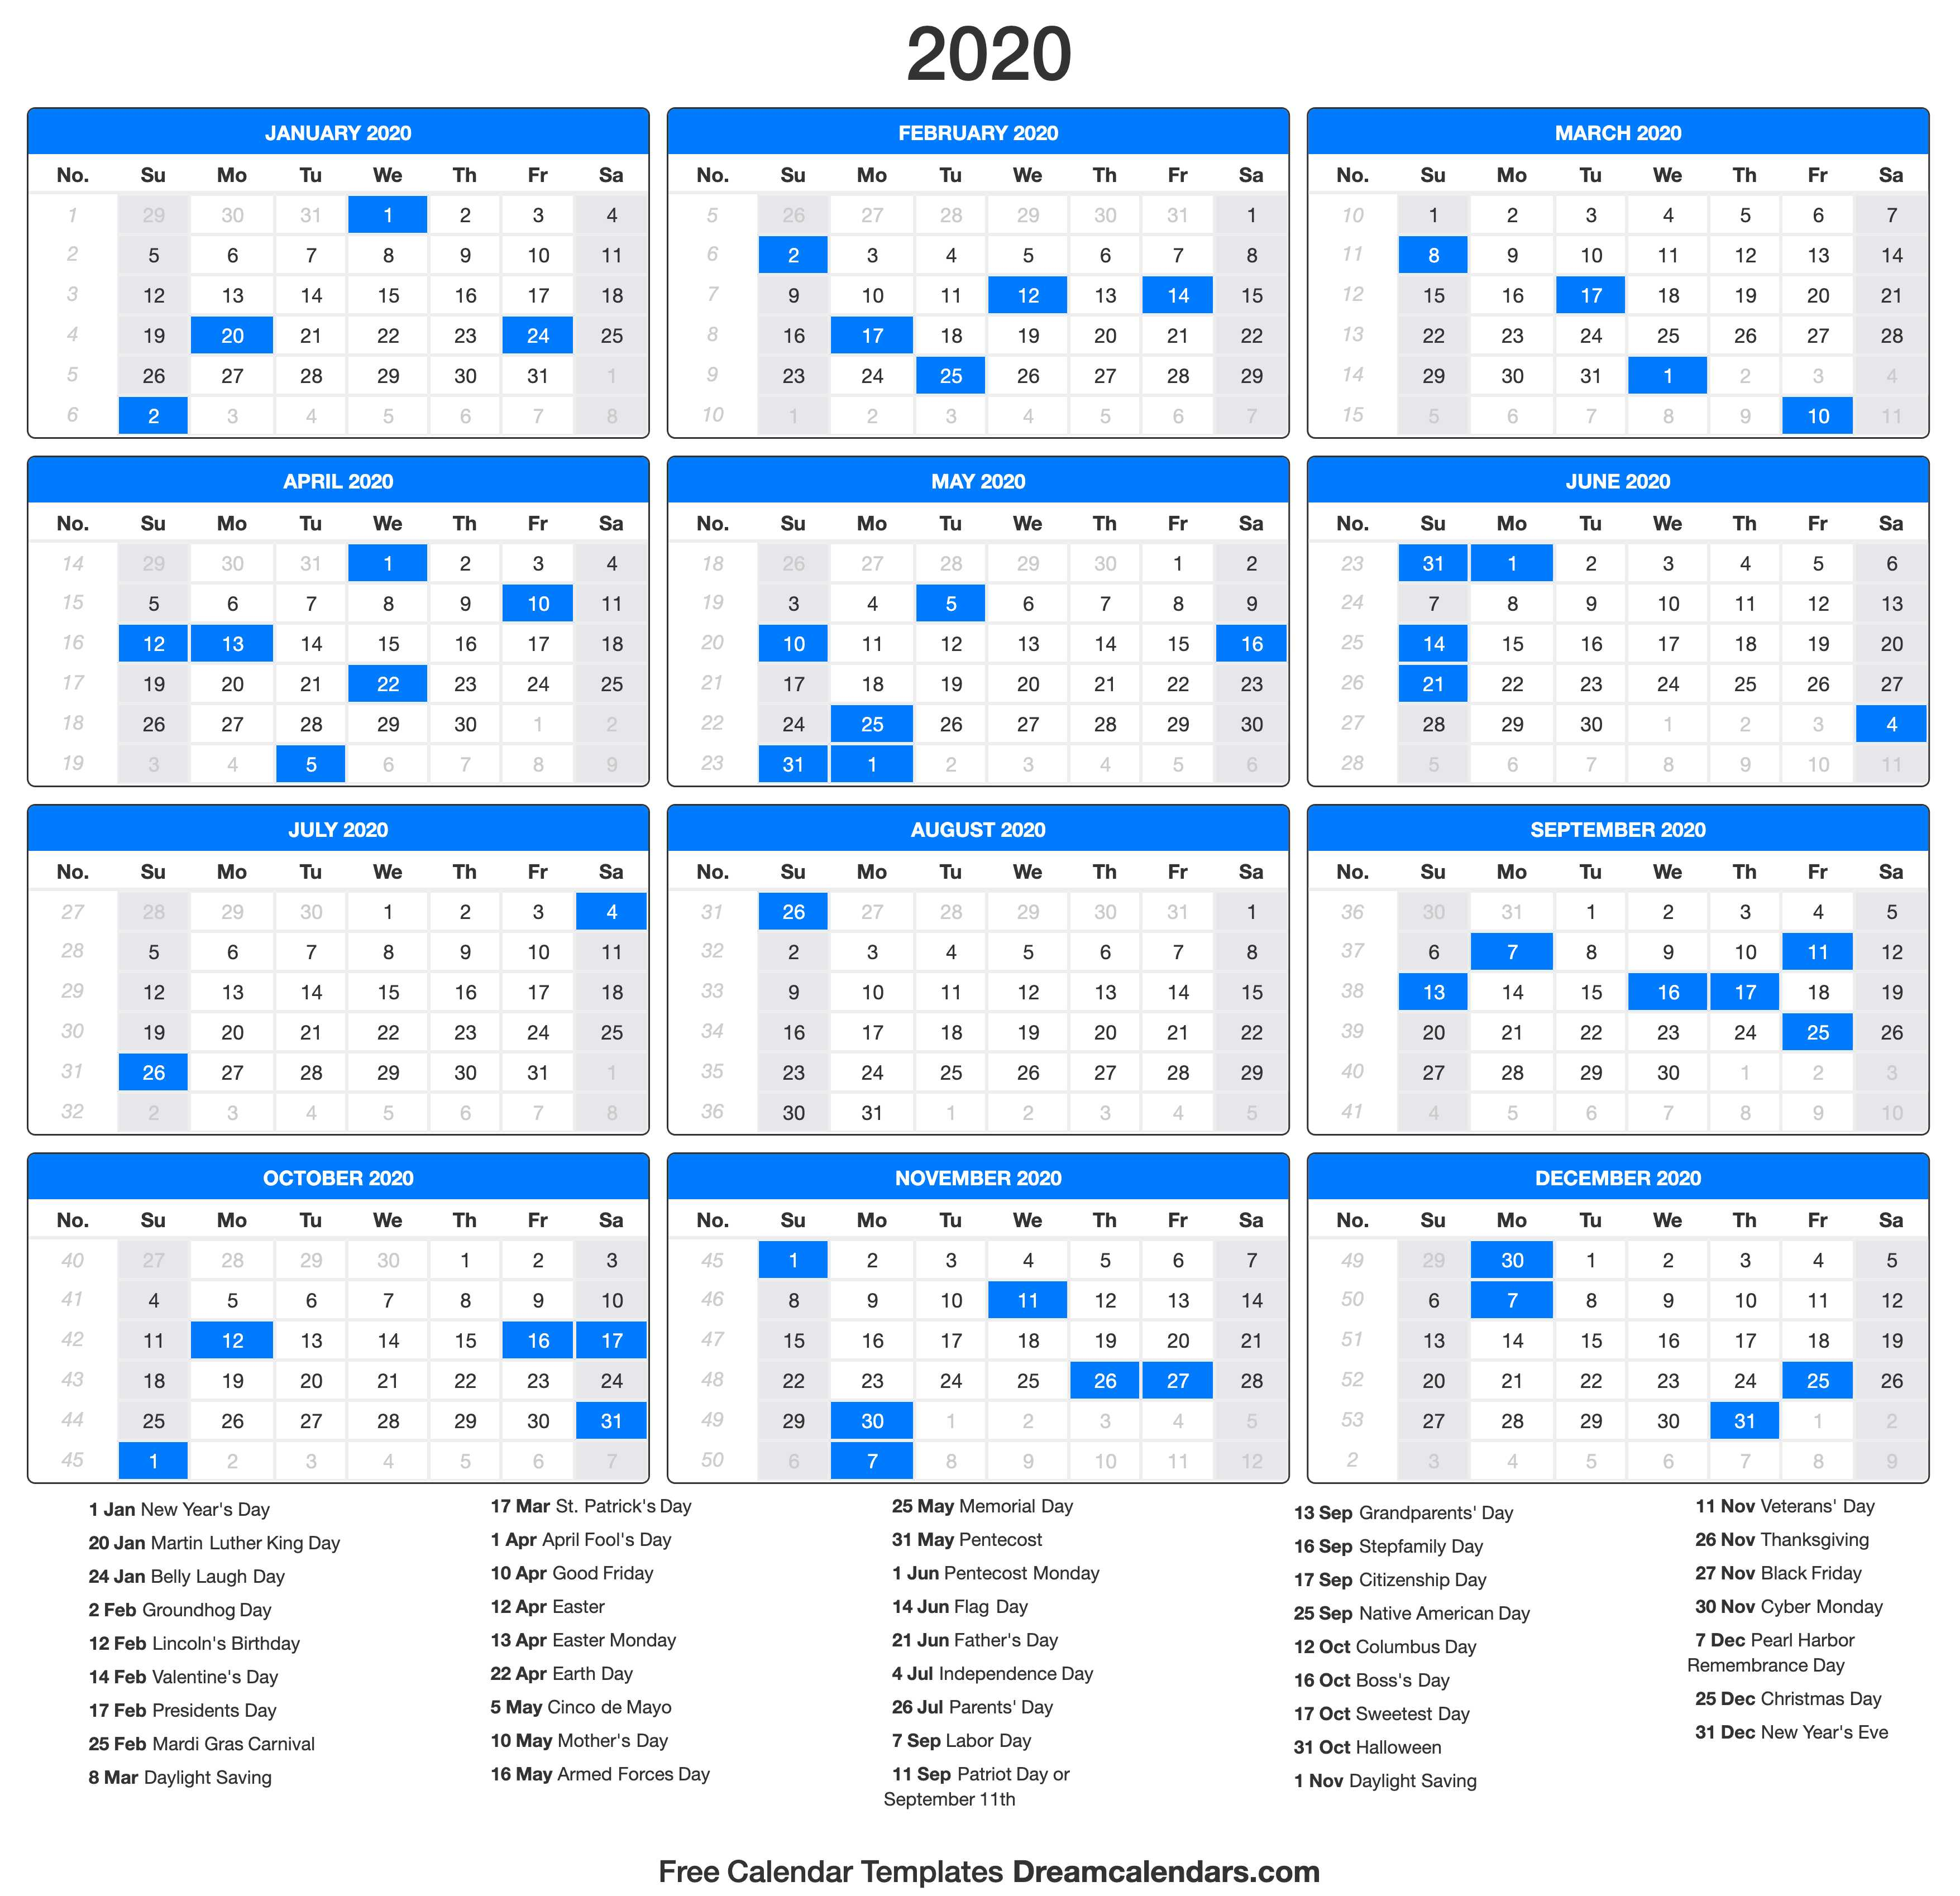 graphic about Calendar With Holidays Printable called 2020 Calendar